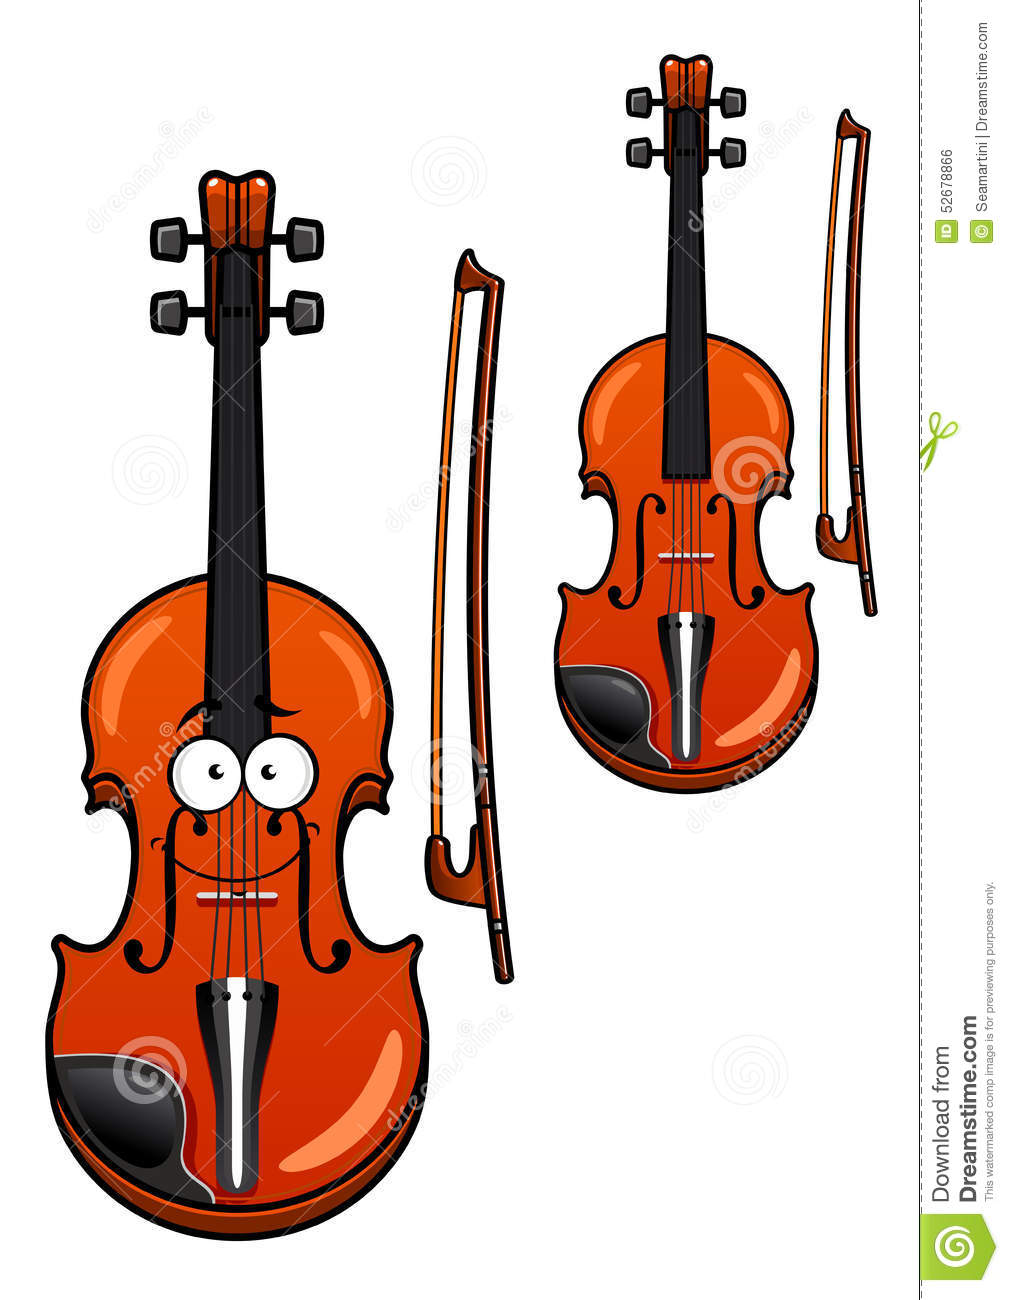 classic wooden violin cartoon character with bow isolated on white ...